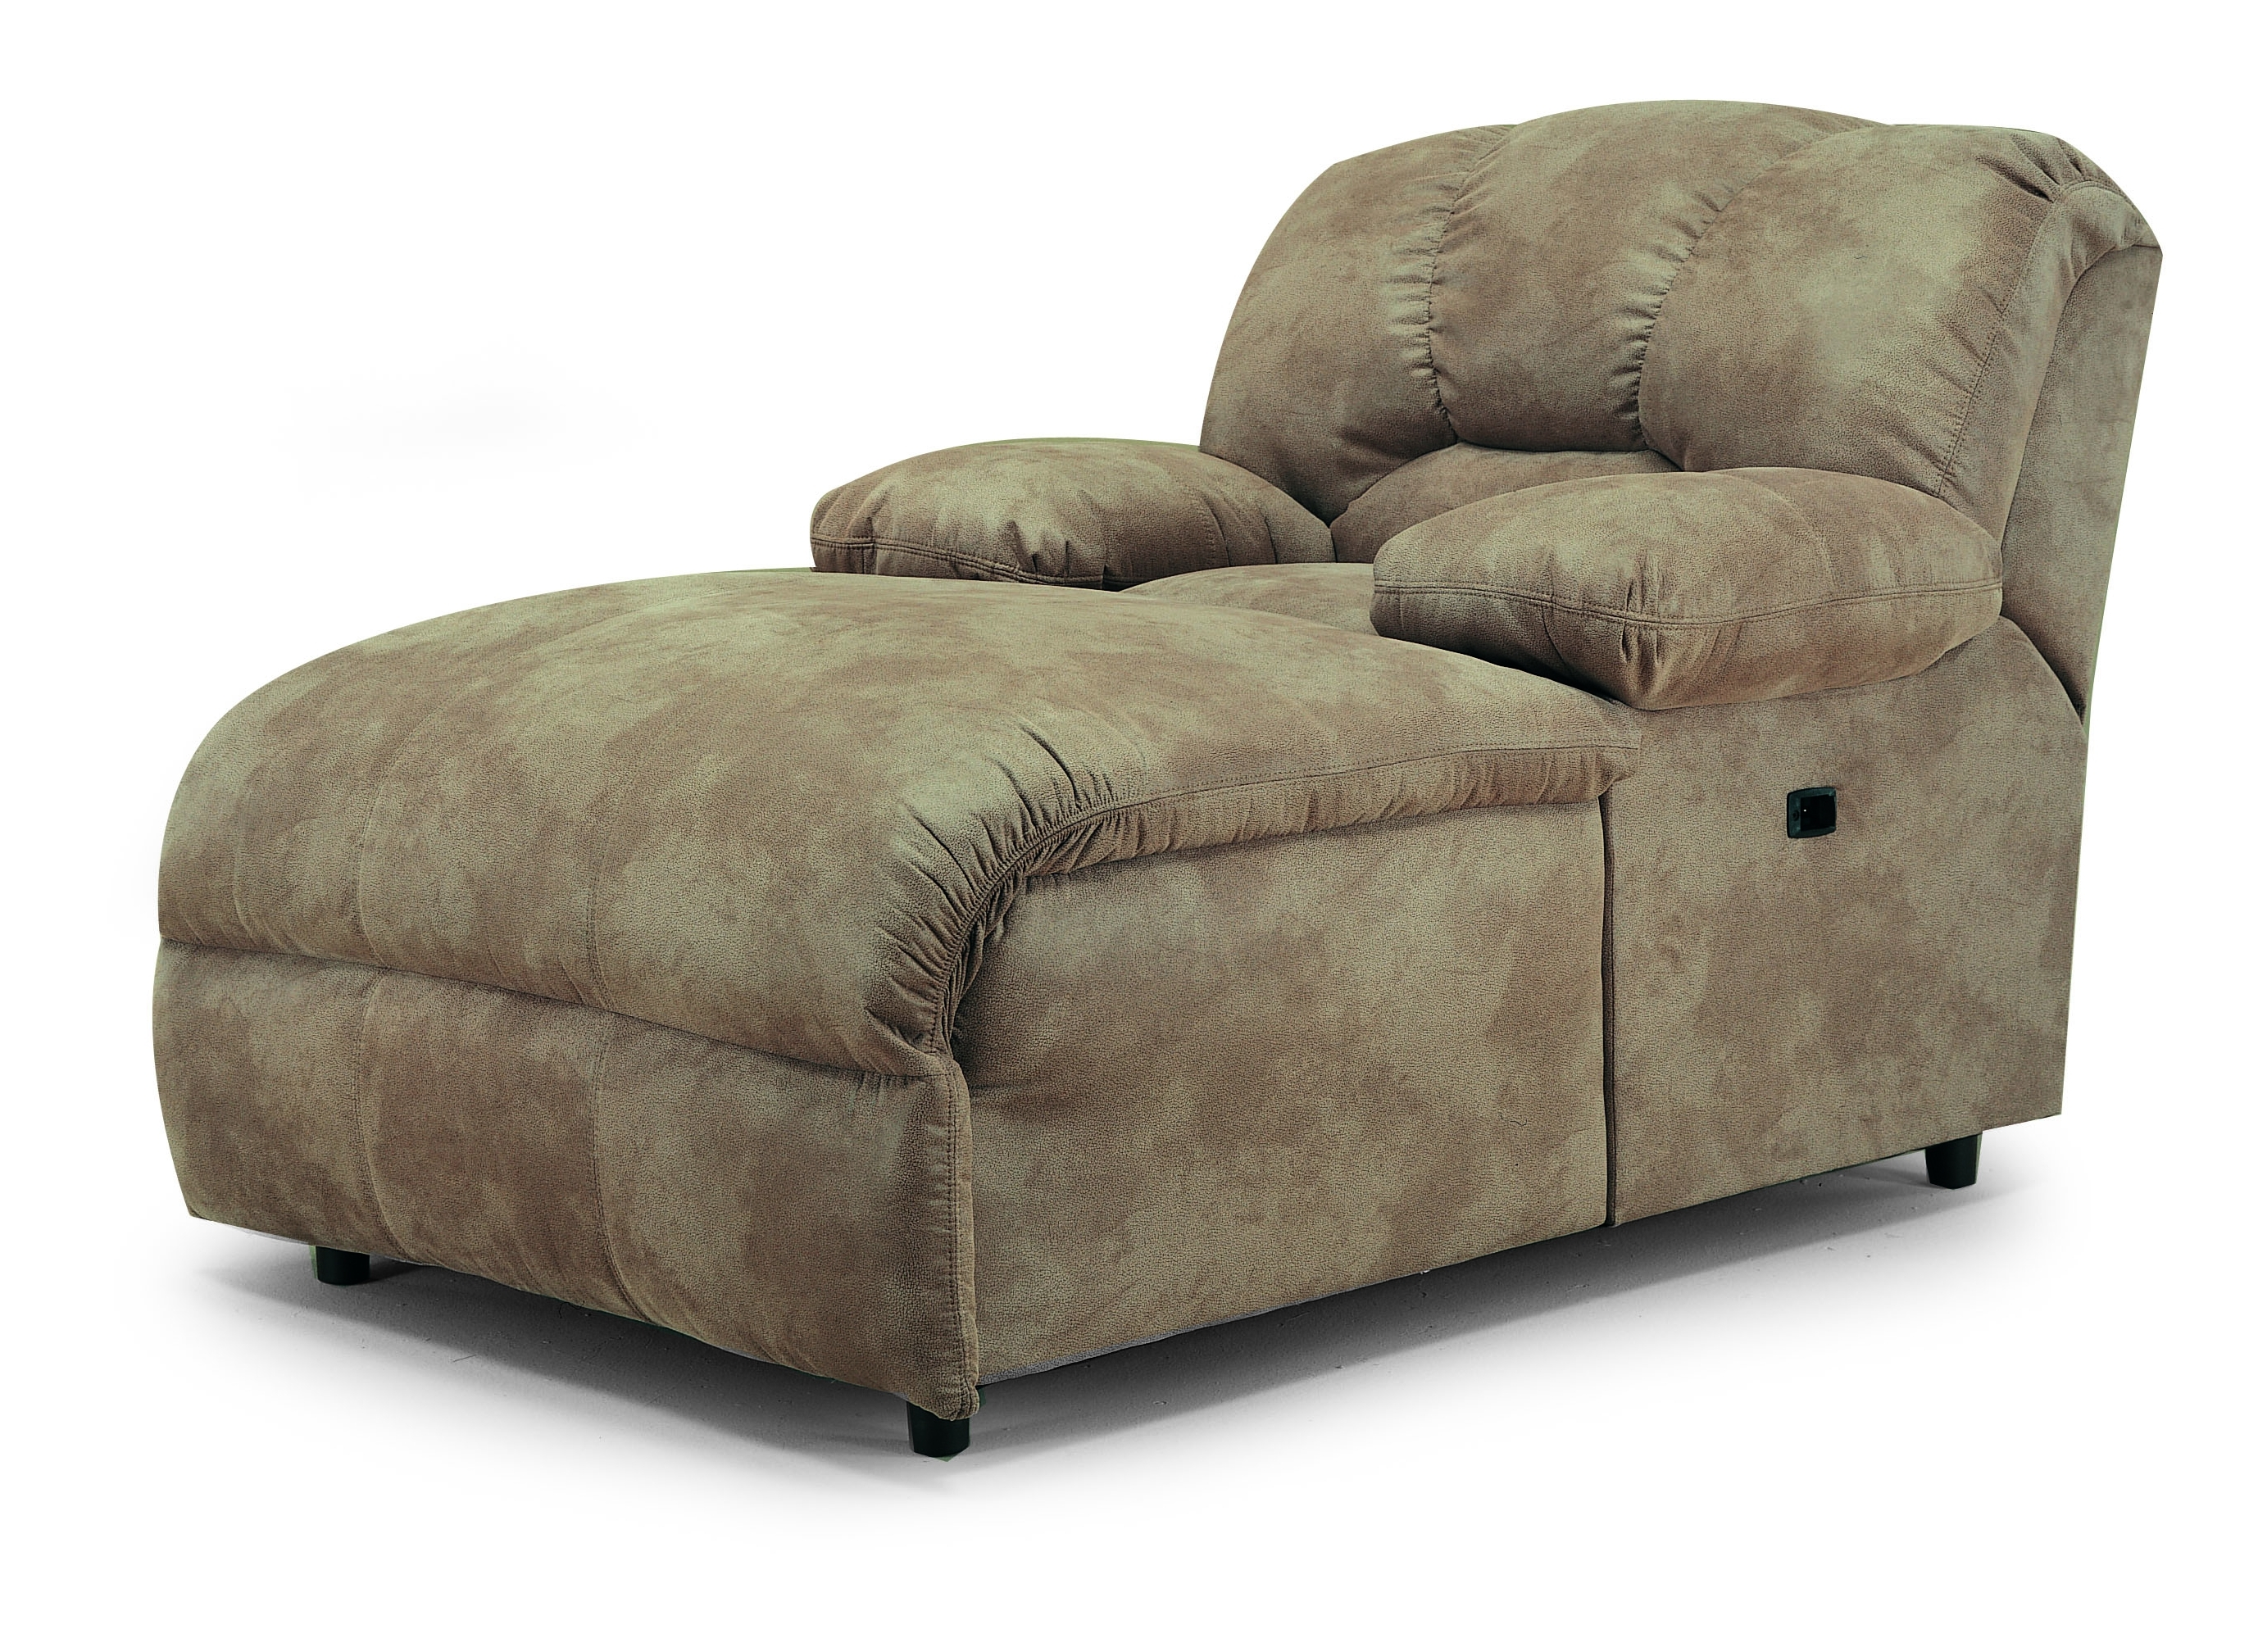 Reclining Chaise Lounges Throughout 2018 Popular Of Reclining Chaise Lounge With Recliner Chaise Lounge My (View 12 of 15)